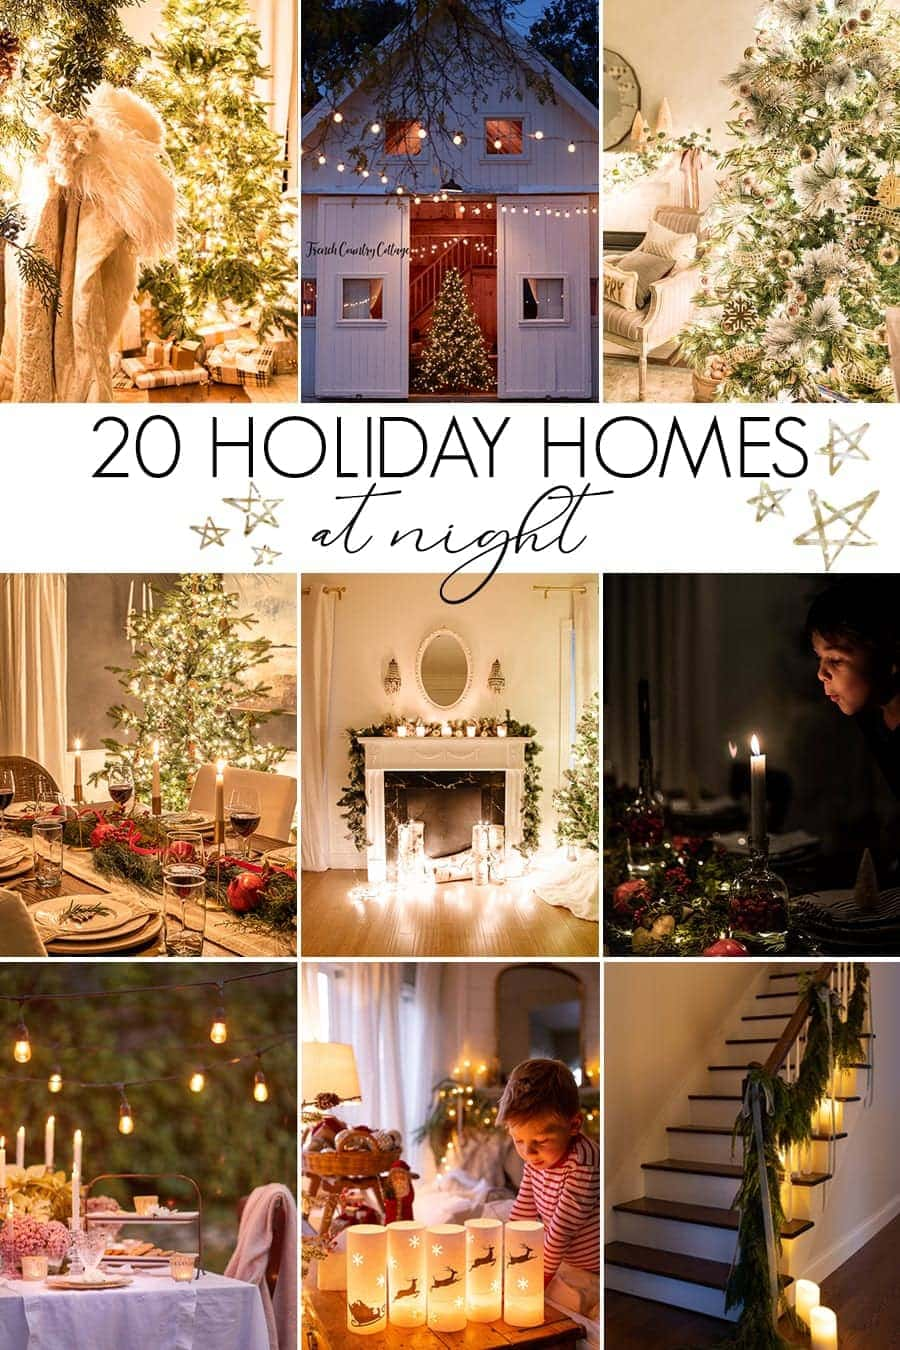 Chistmas Candlelight Home Tours